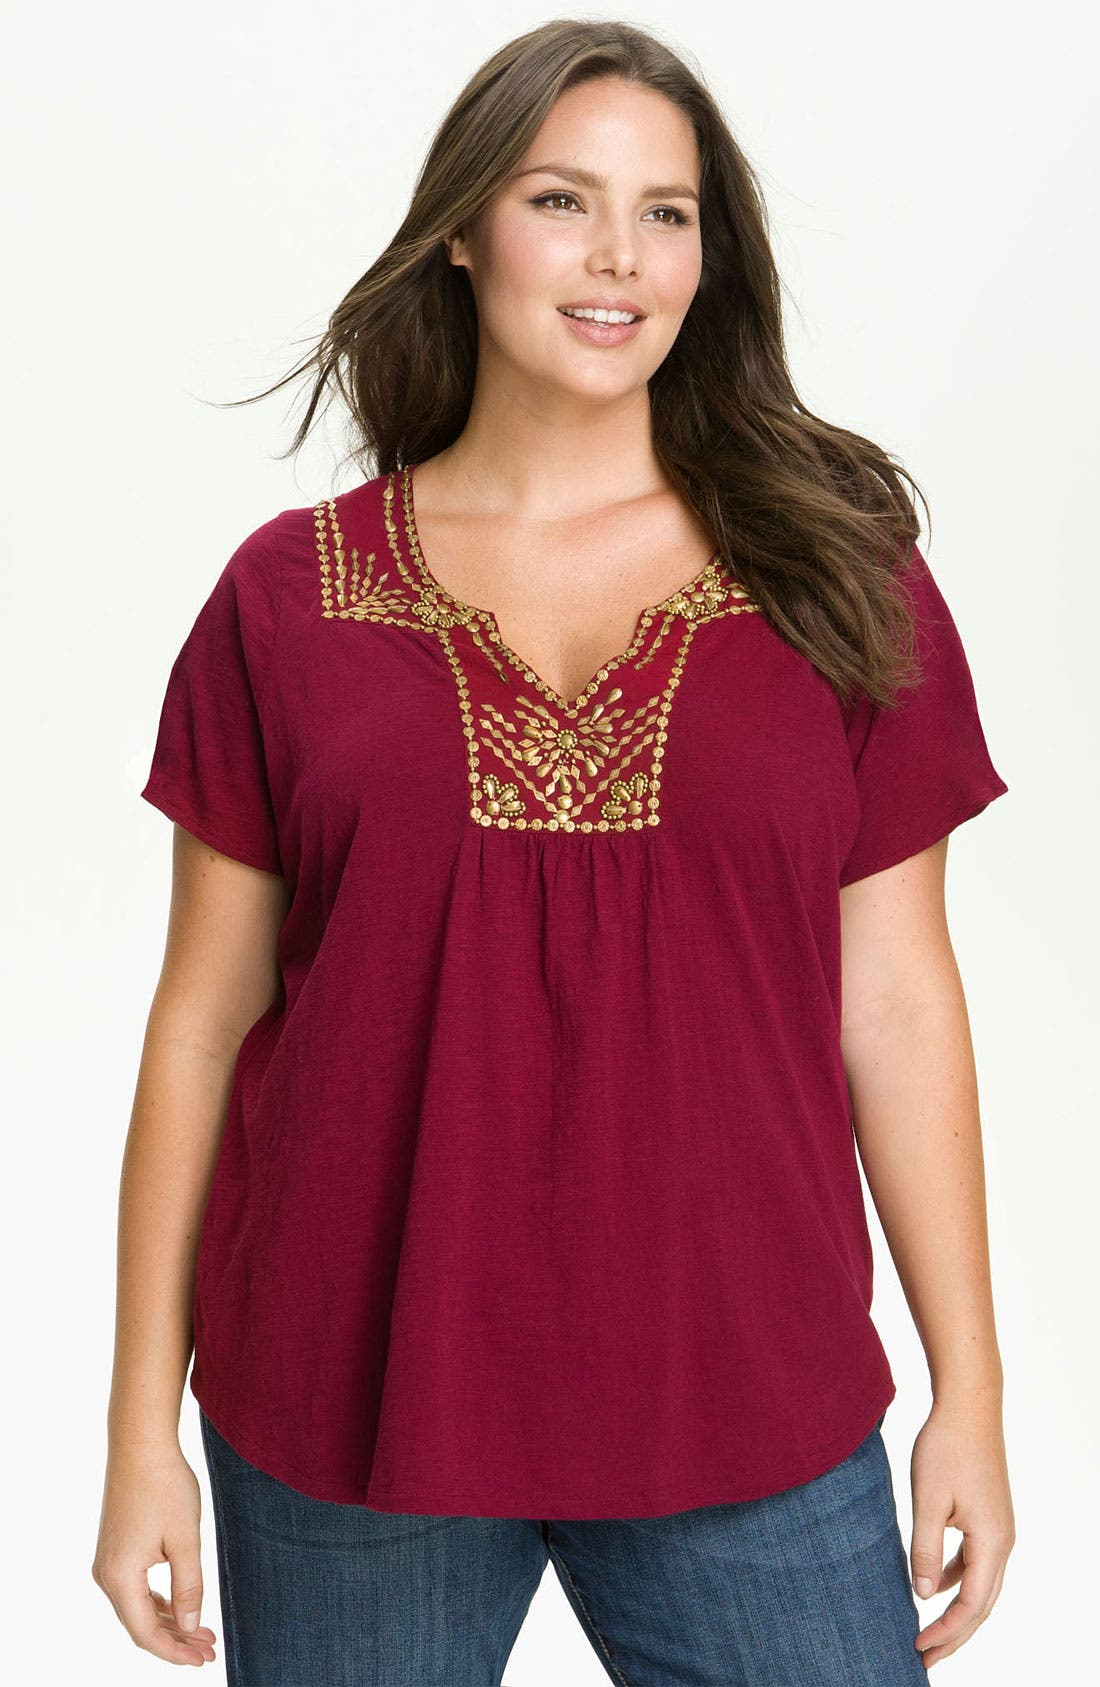 Main Image - Lucky Brand 'Veronica' Top (Plus)